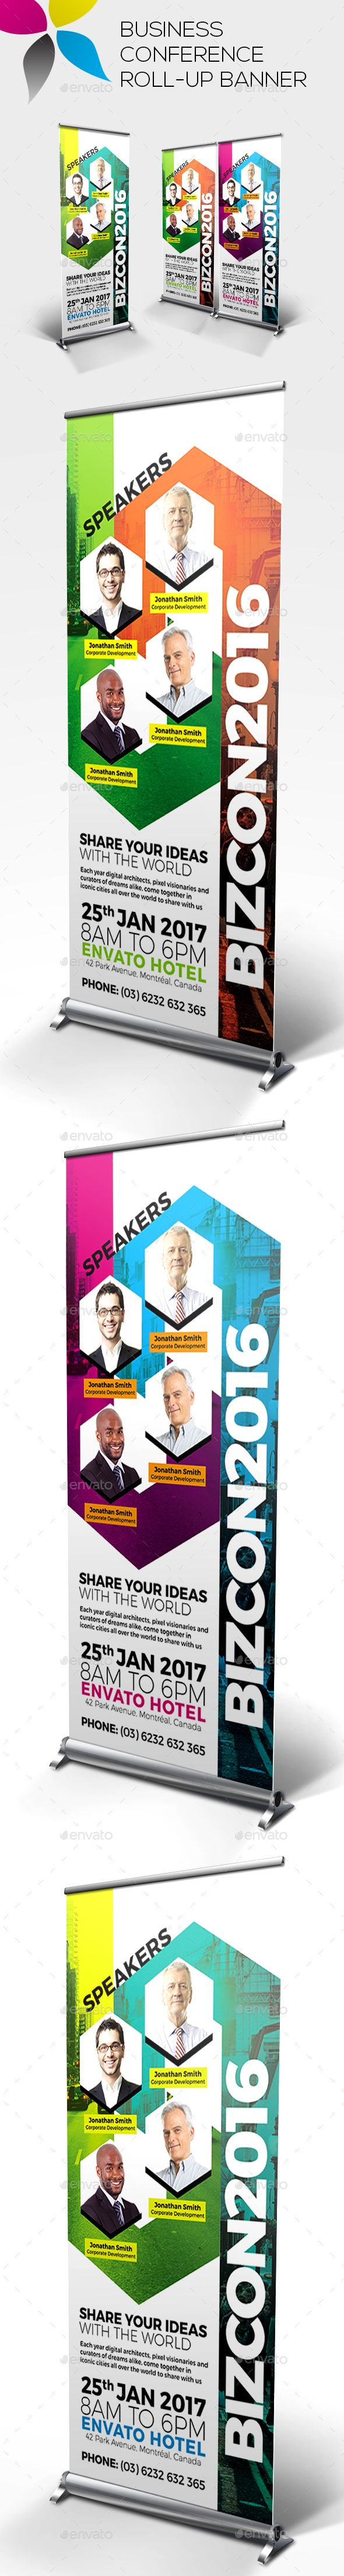 Business Conference Roll-up Banners Template PSD